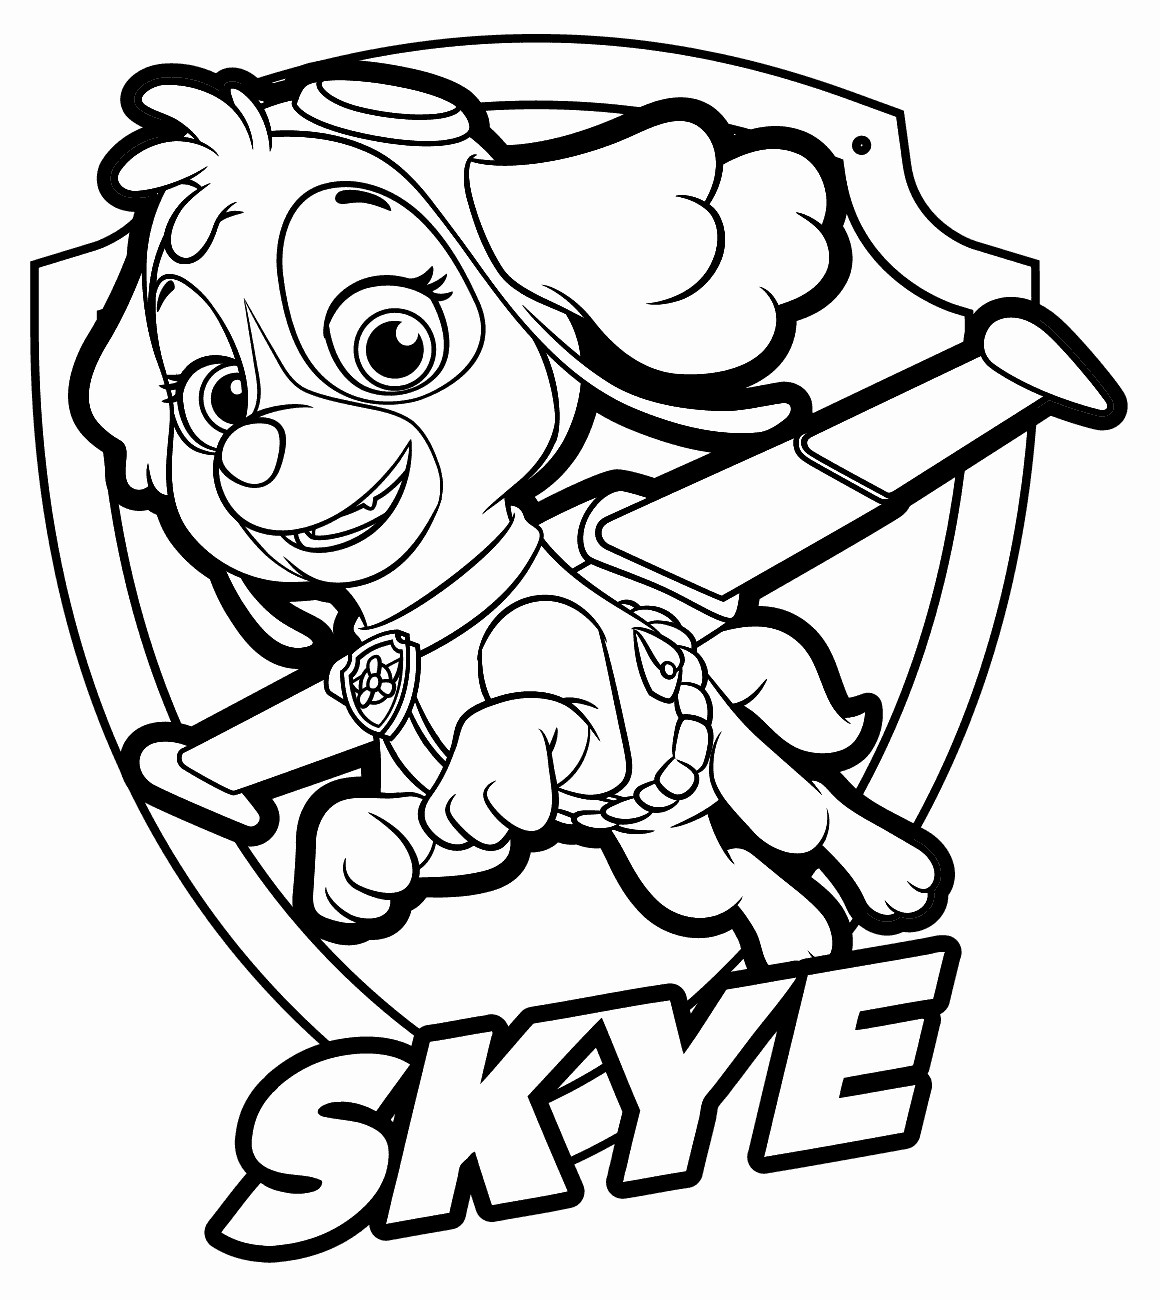 paw patrol coloring pages sky at getdrawings  free download